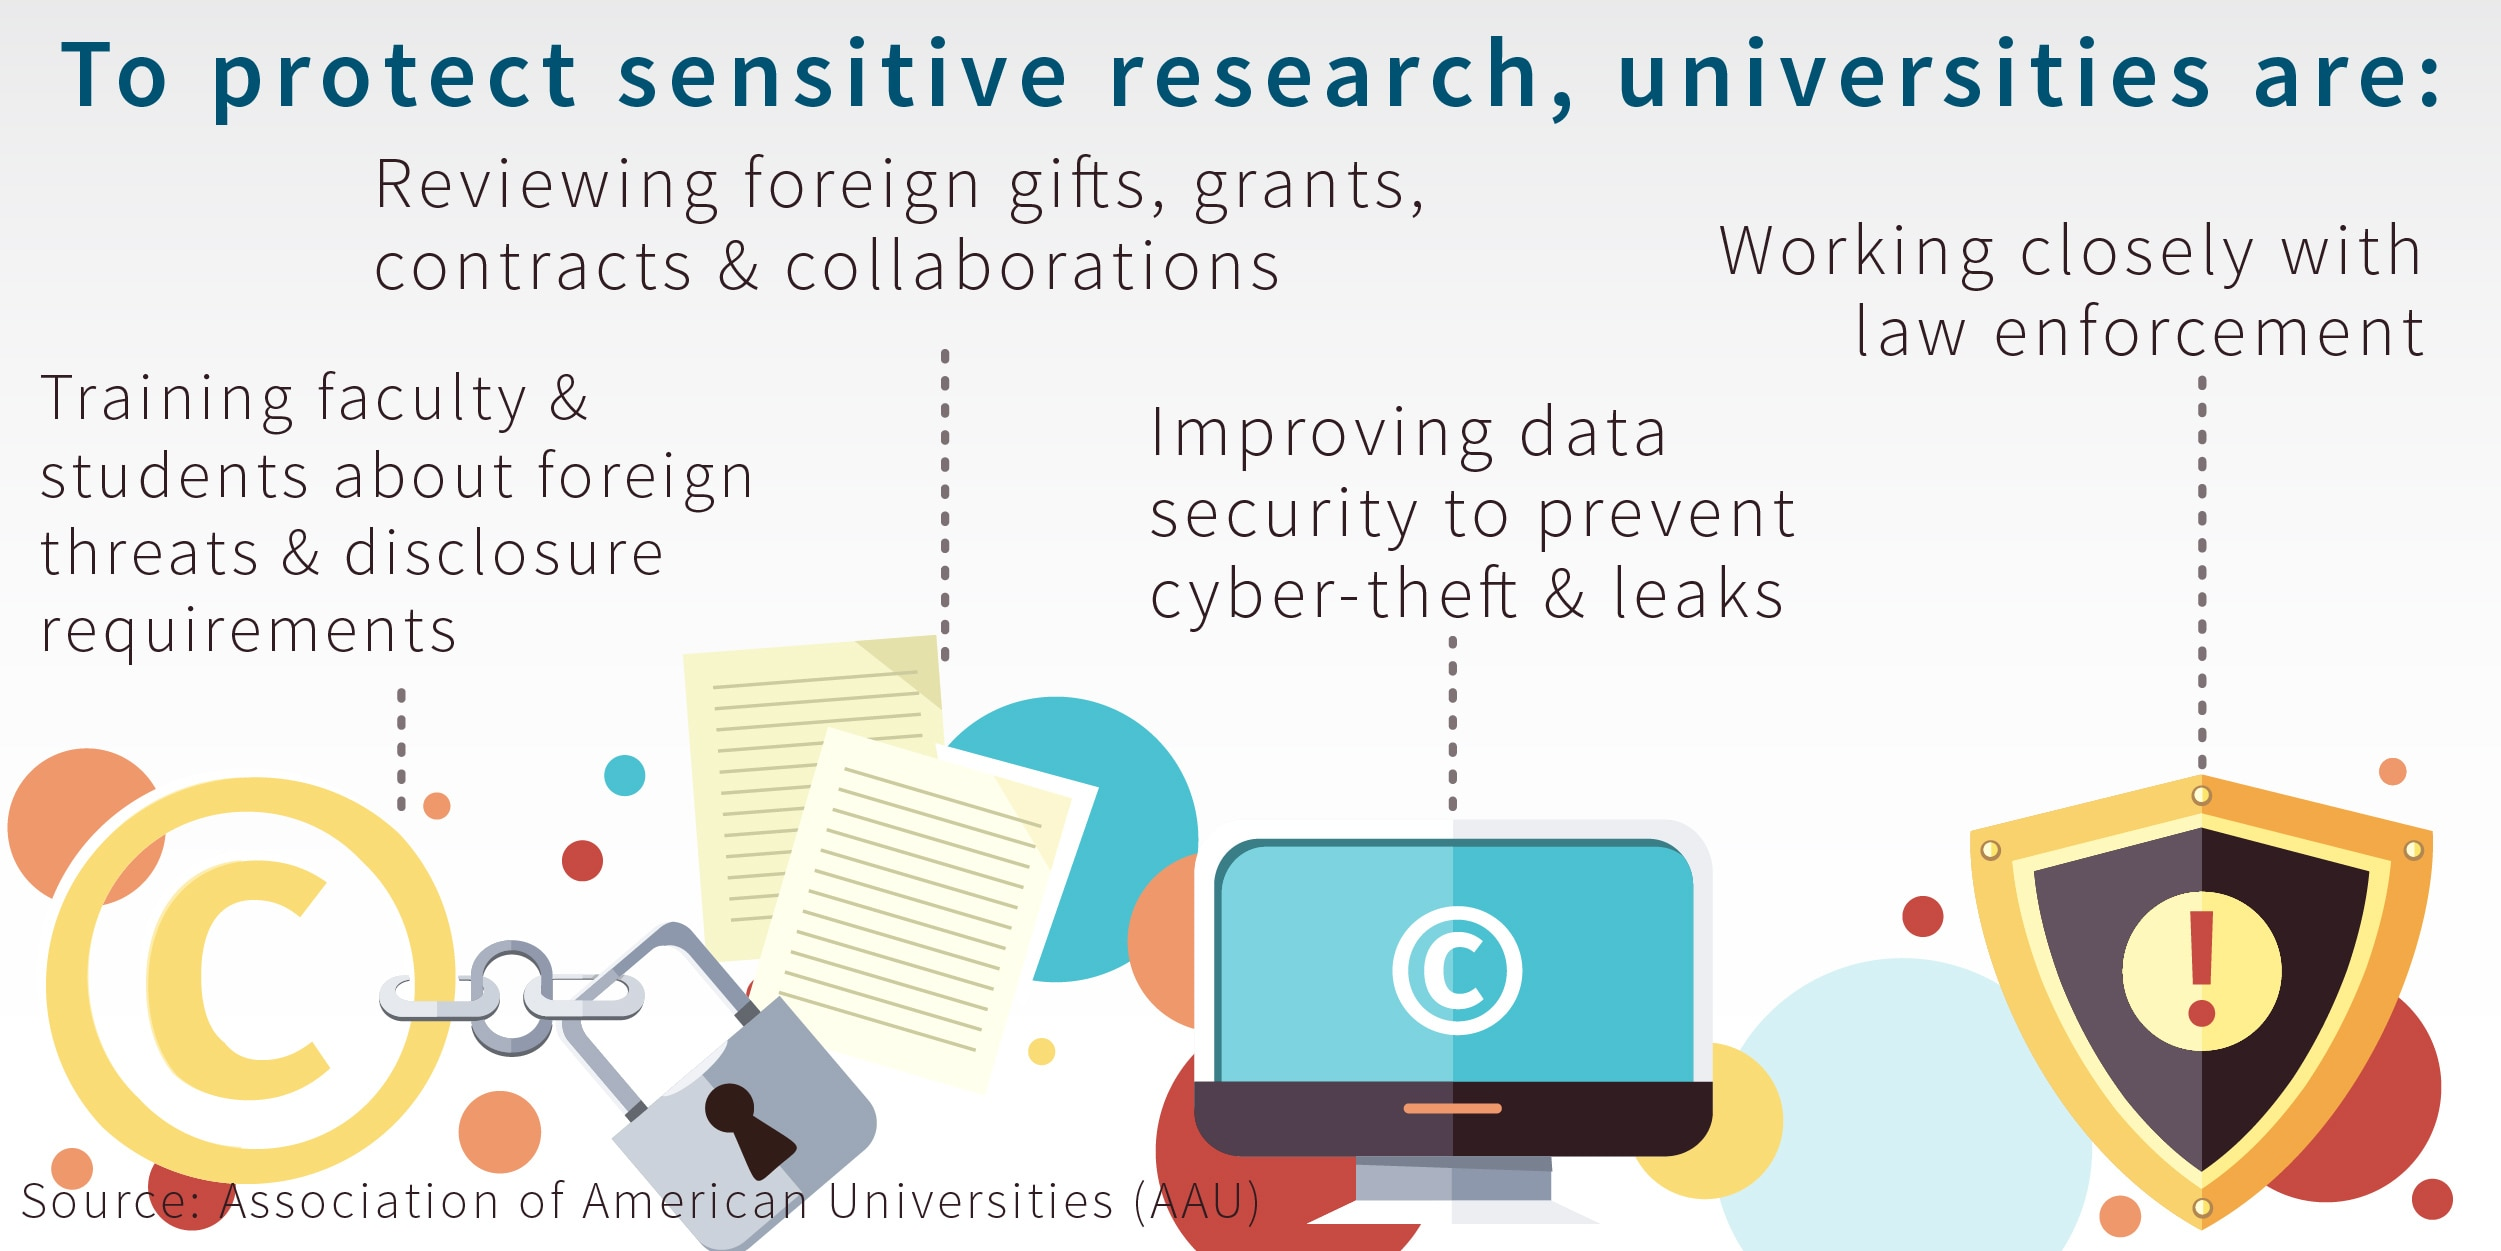 Graphic about steps universities take to protect sensitive research (AAU)